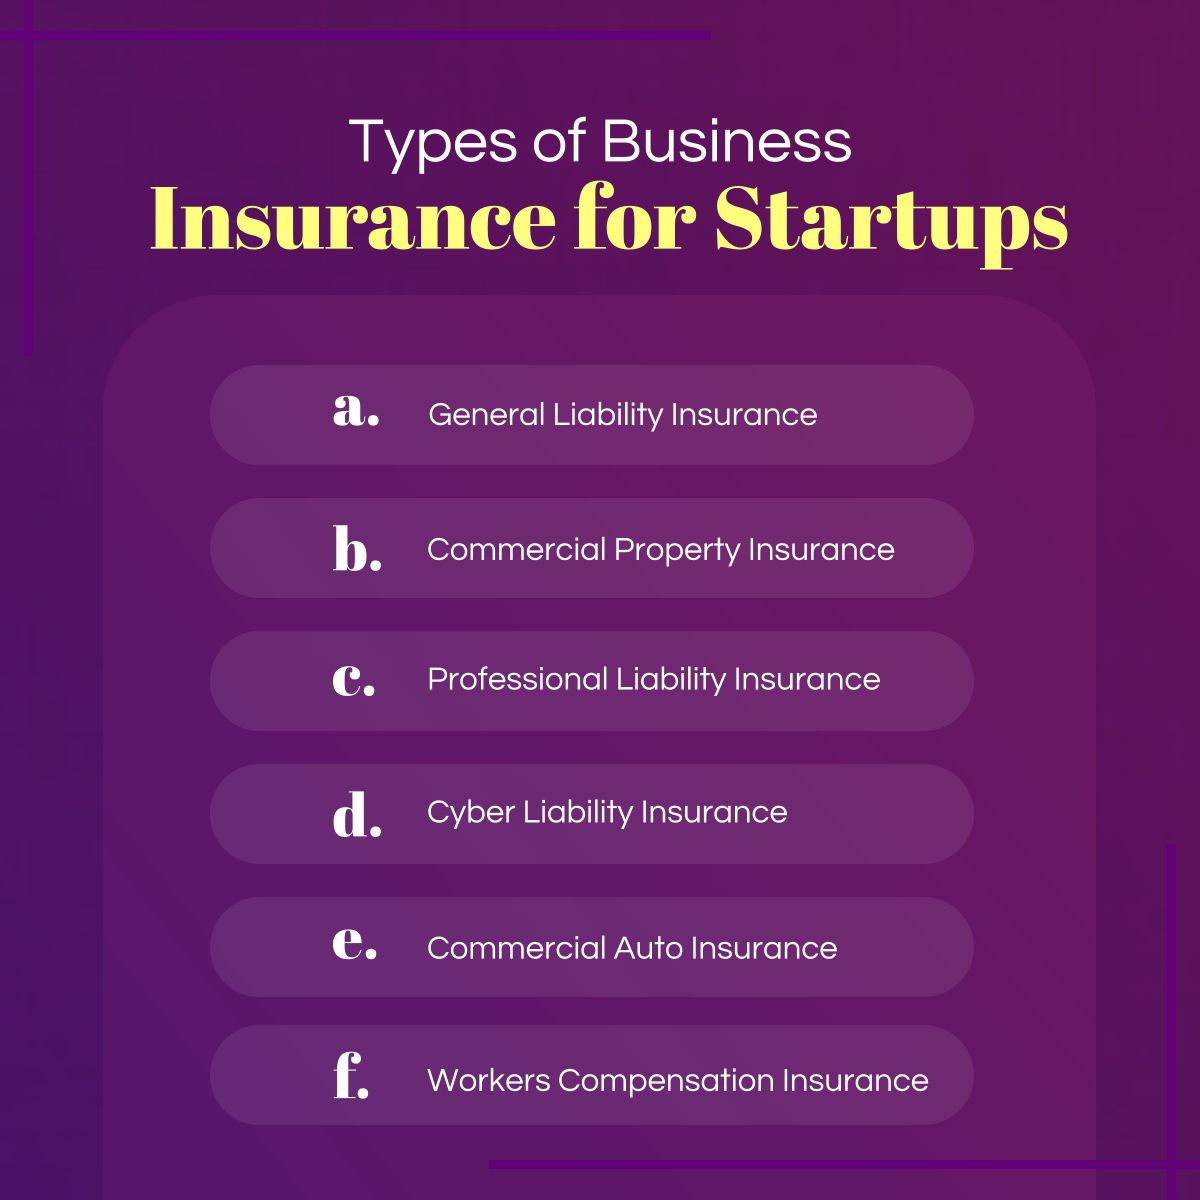 Types Of Business Insurance For Startups Businessinsurance